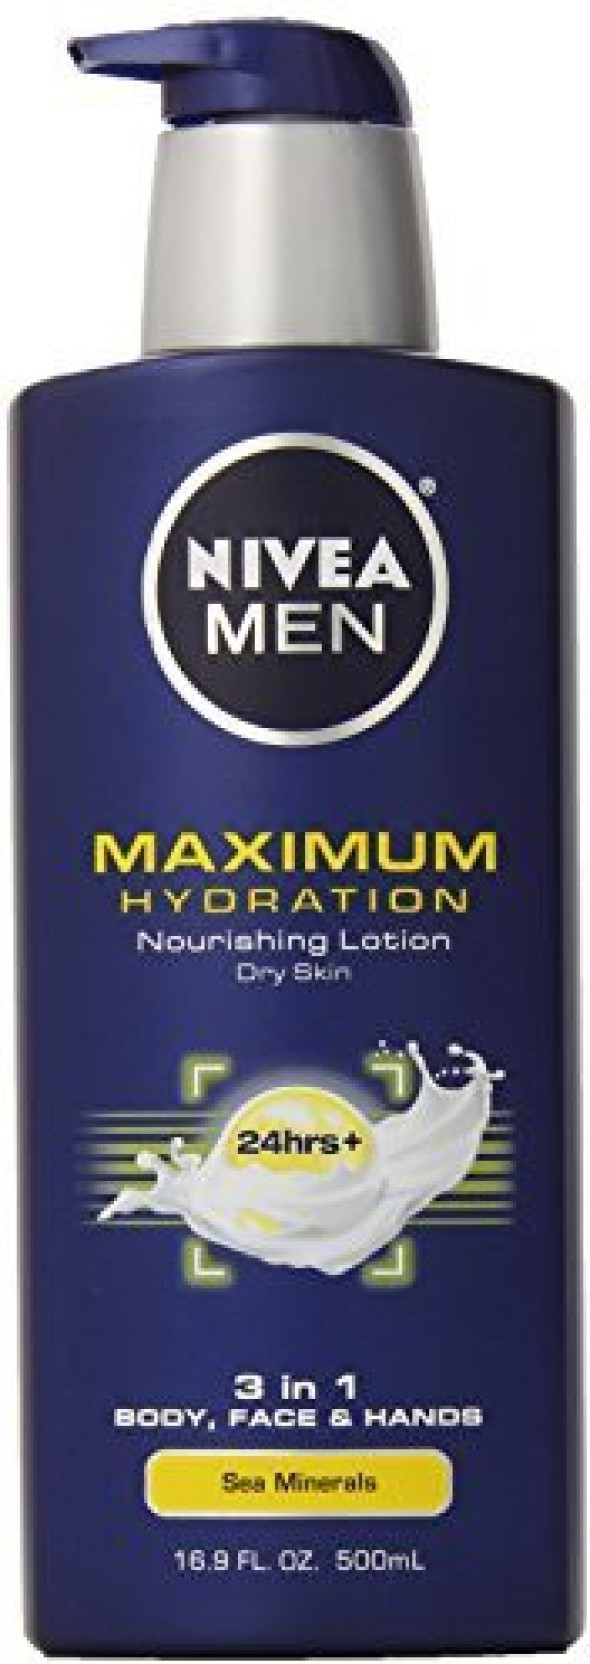 mens lotion for dry skin